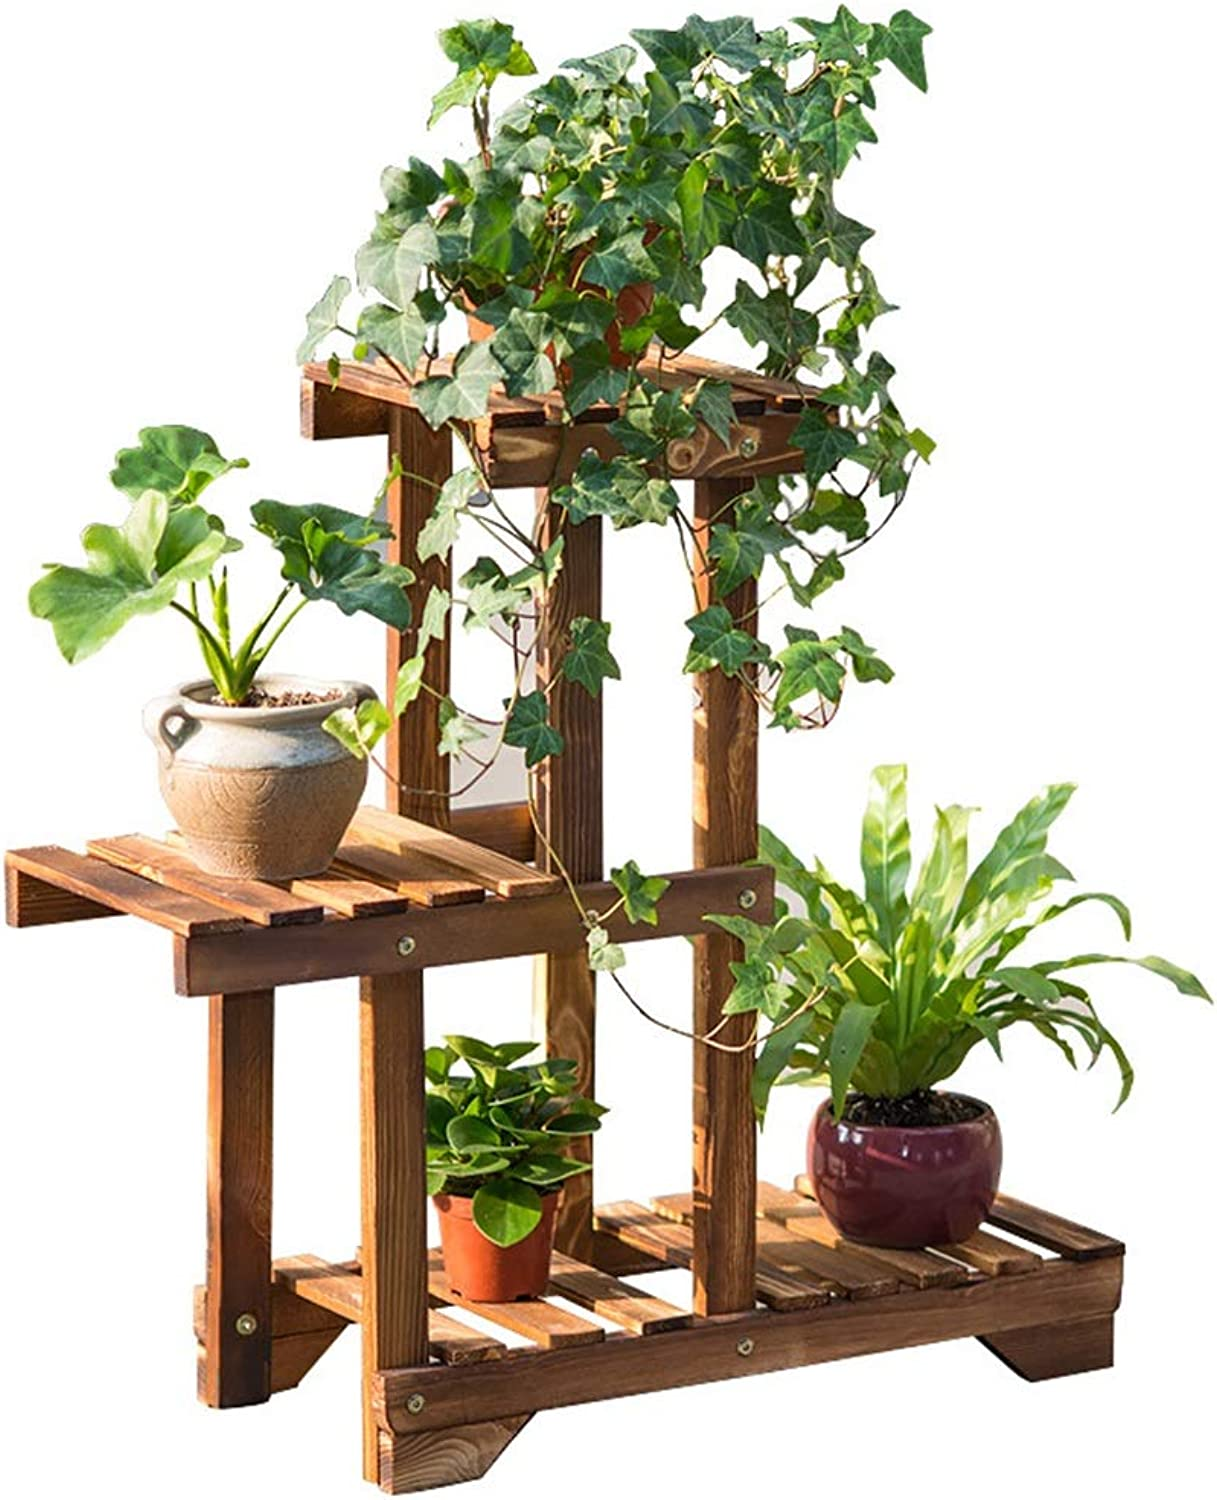 Plant Stand- Plant Theatre Herb Planter Potting Table Potted Table Display Stand Gardening Gifts for Women